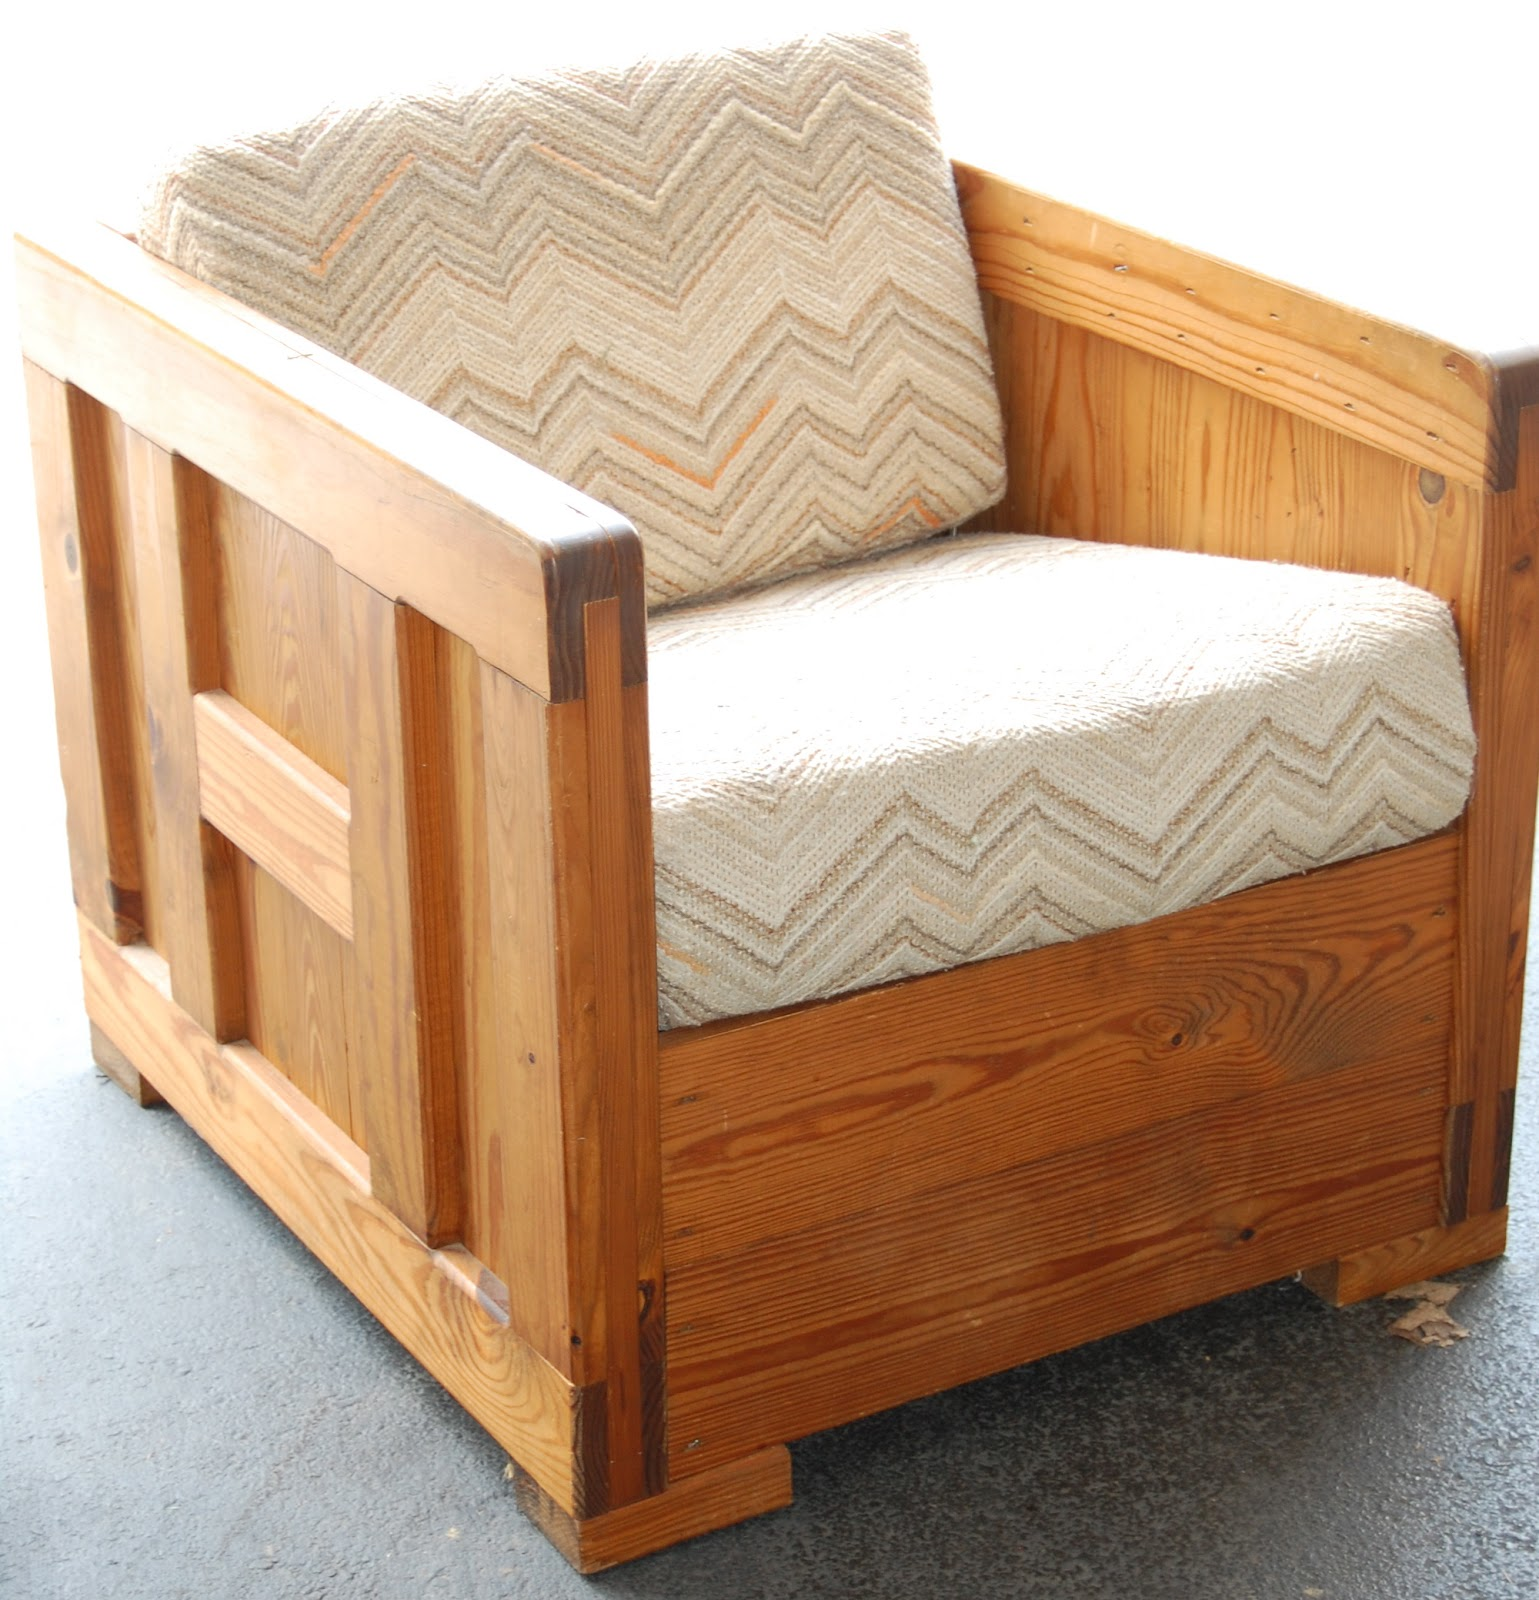 Wood Crate Furniture Of crate furniture from